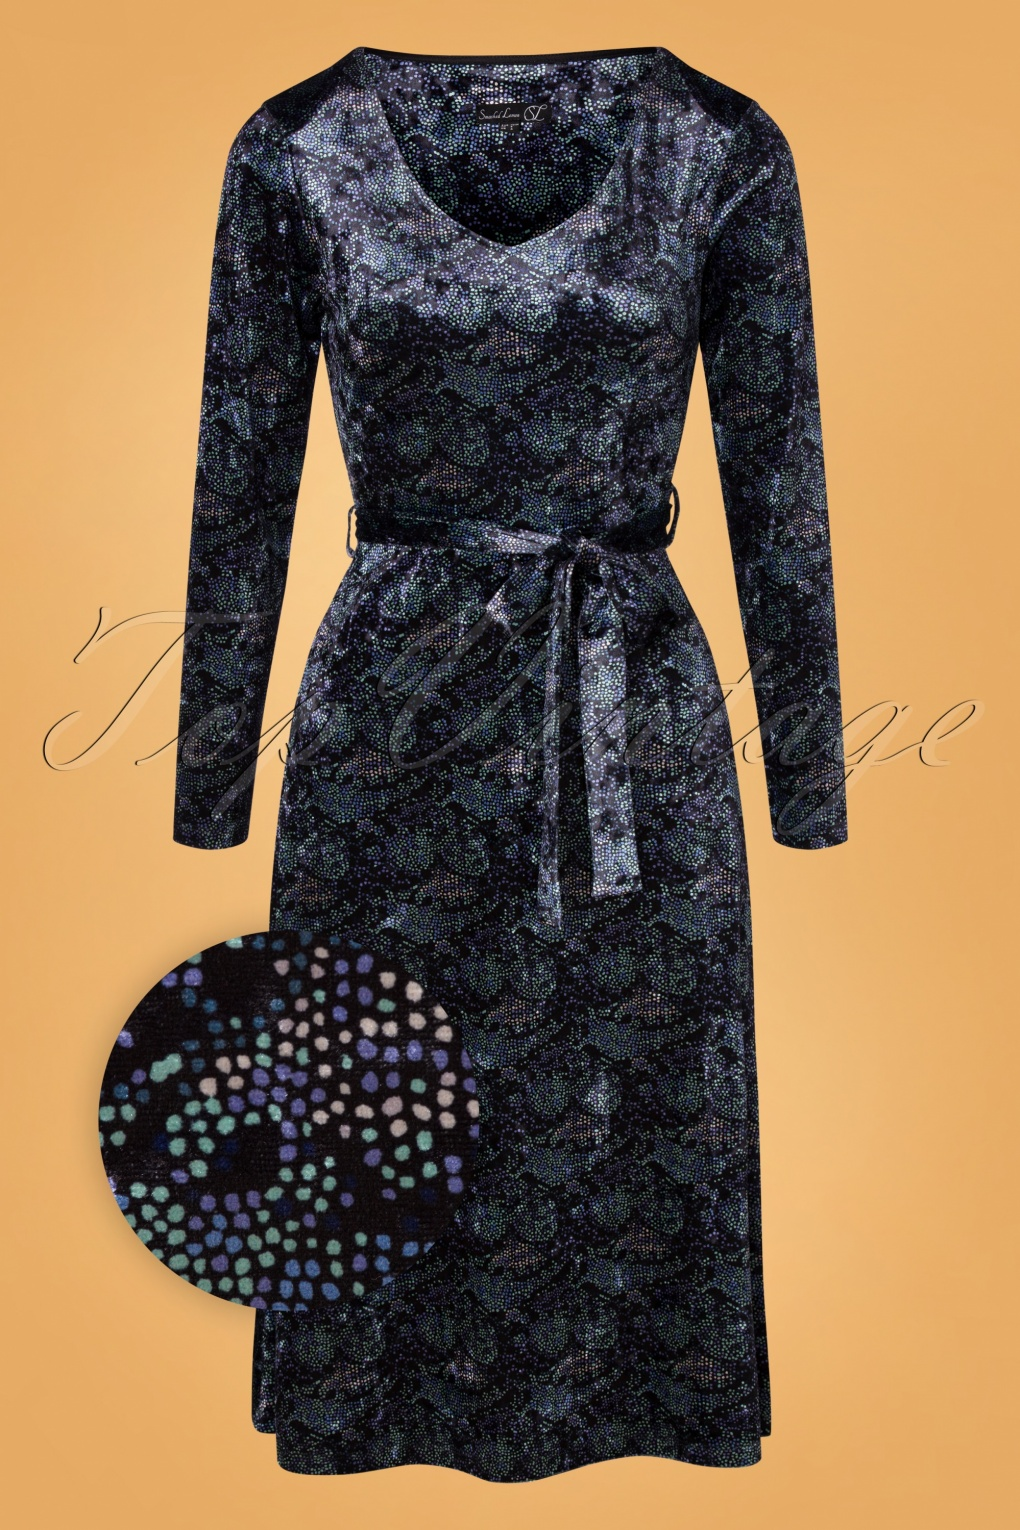 70s Prom, Formal, Evening, Party Dresses 60s Cobie Velvet Dress in Black and Blue £71.07 AT vintagedancer.com